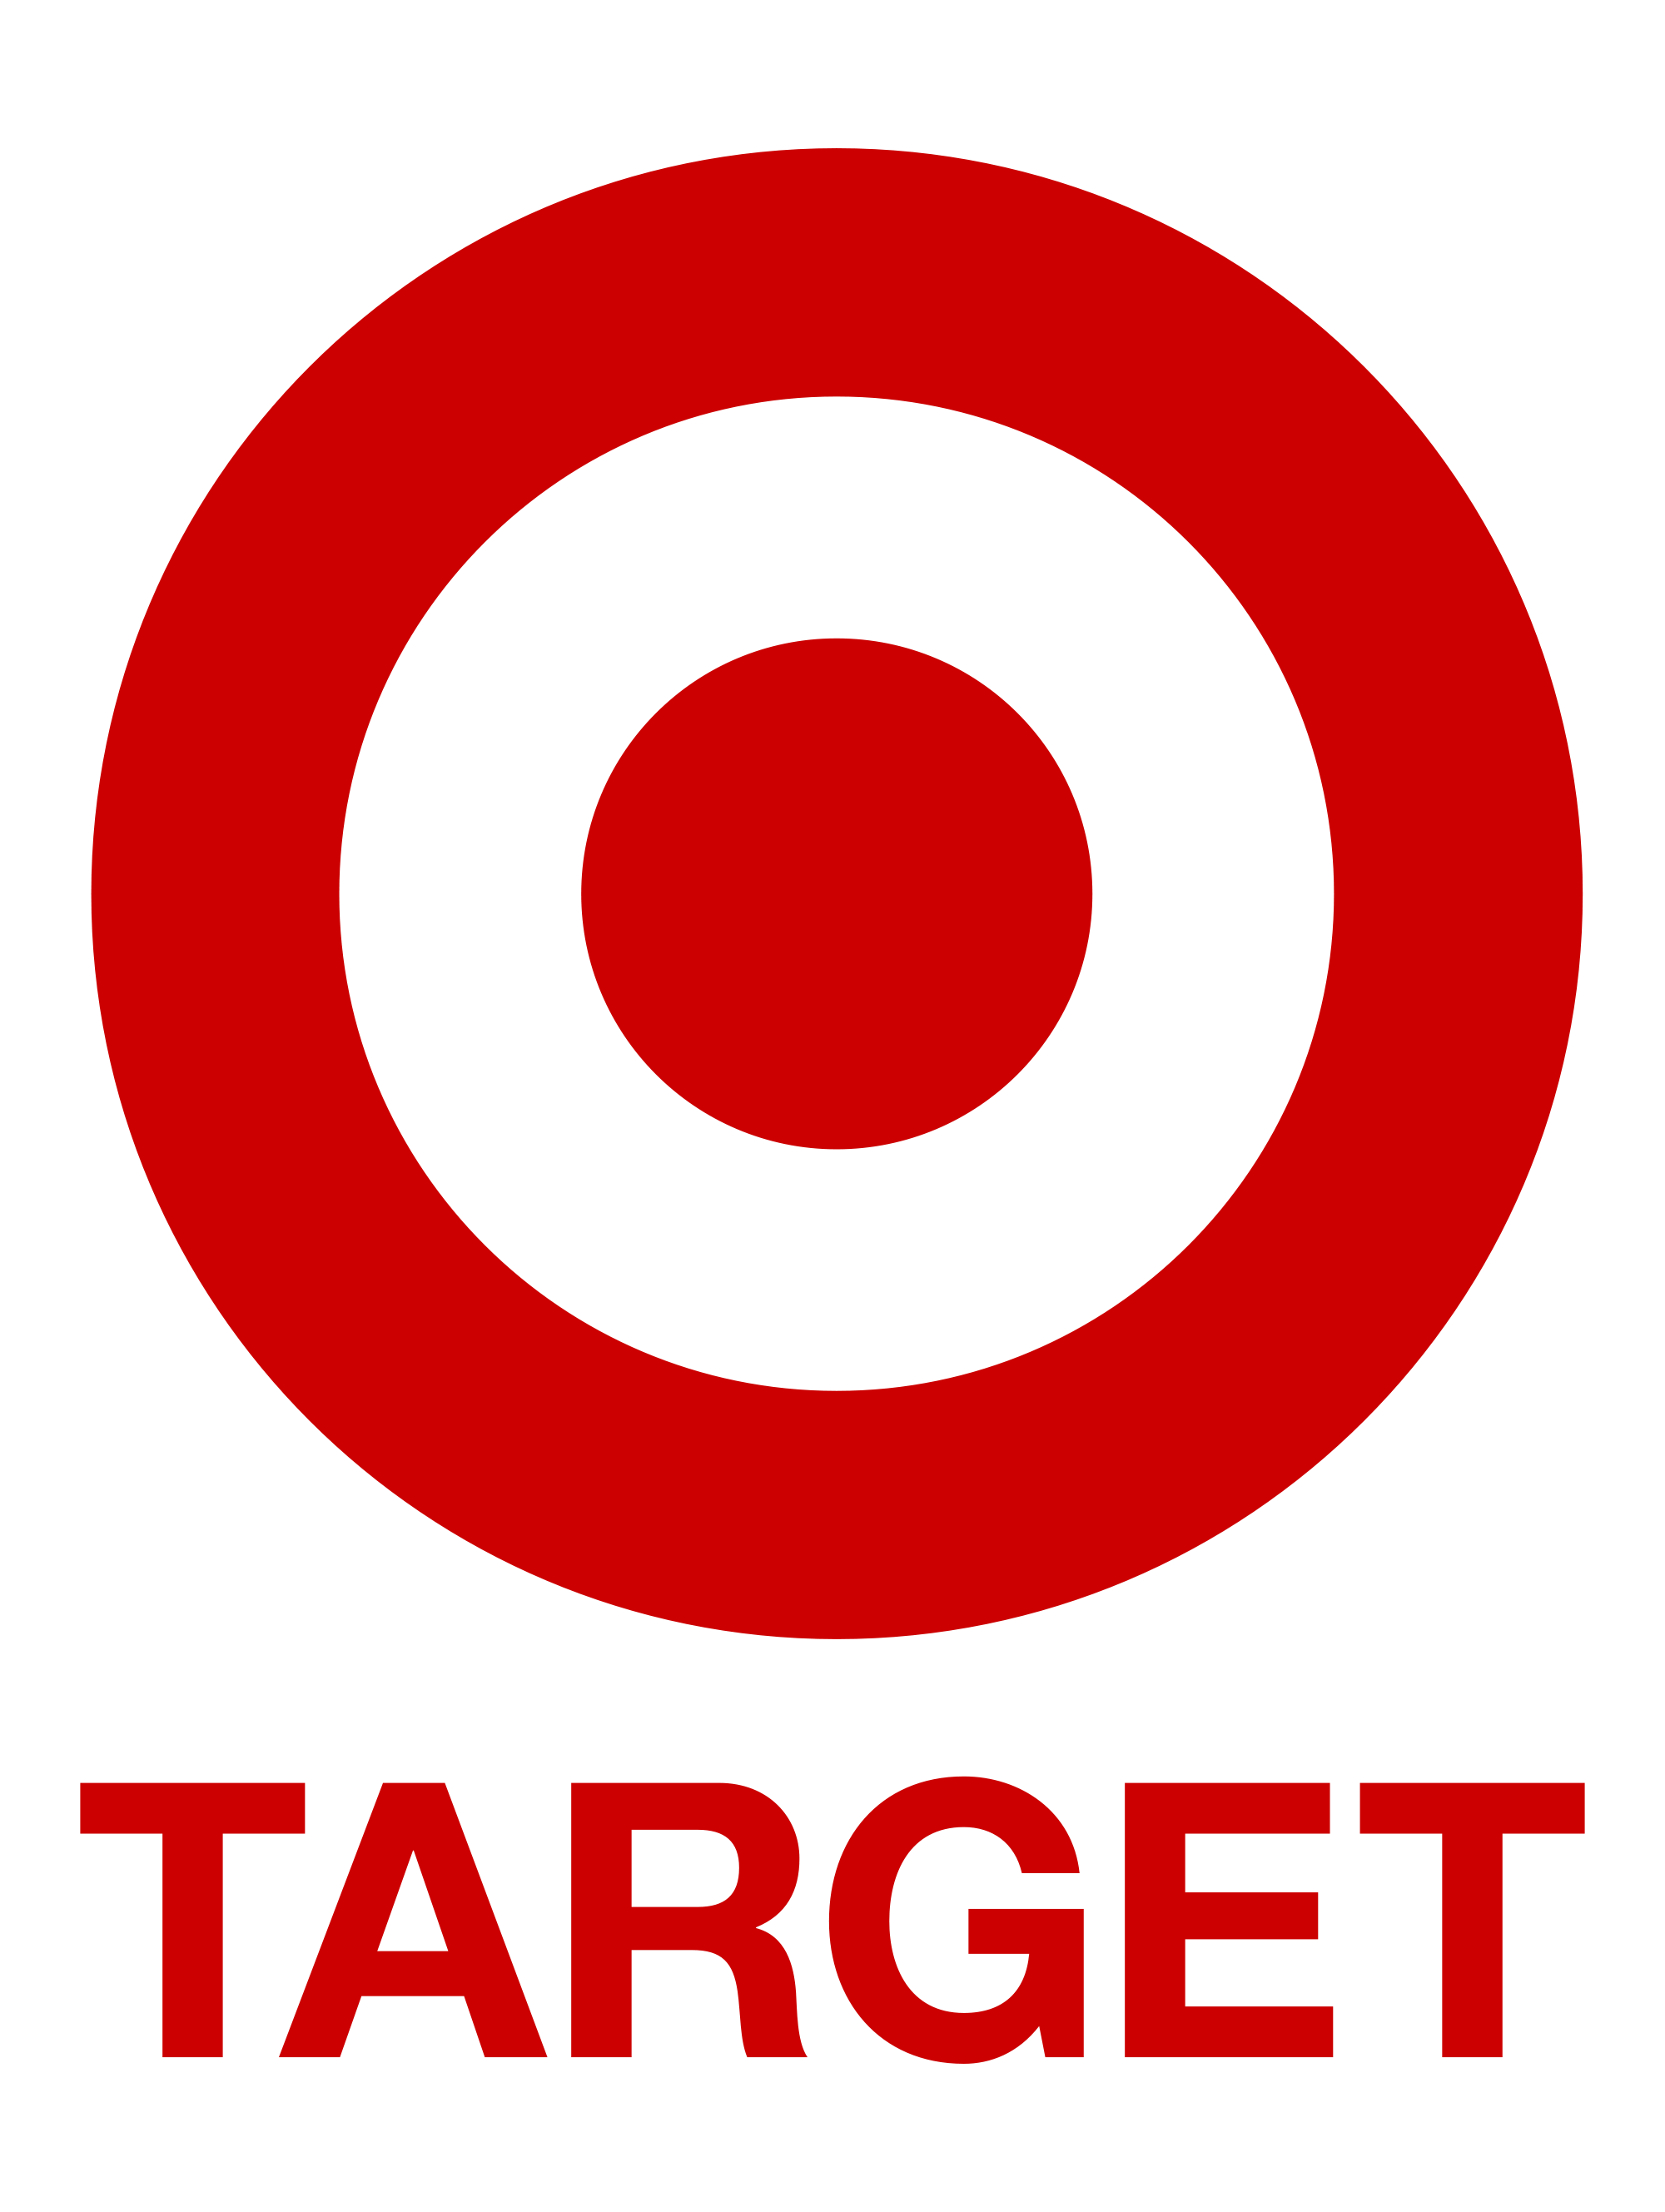 map of target stores in the us reloadit heatmap new world